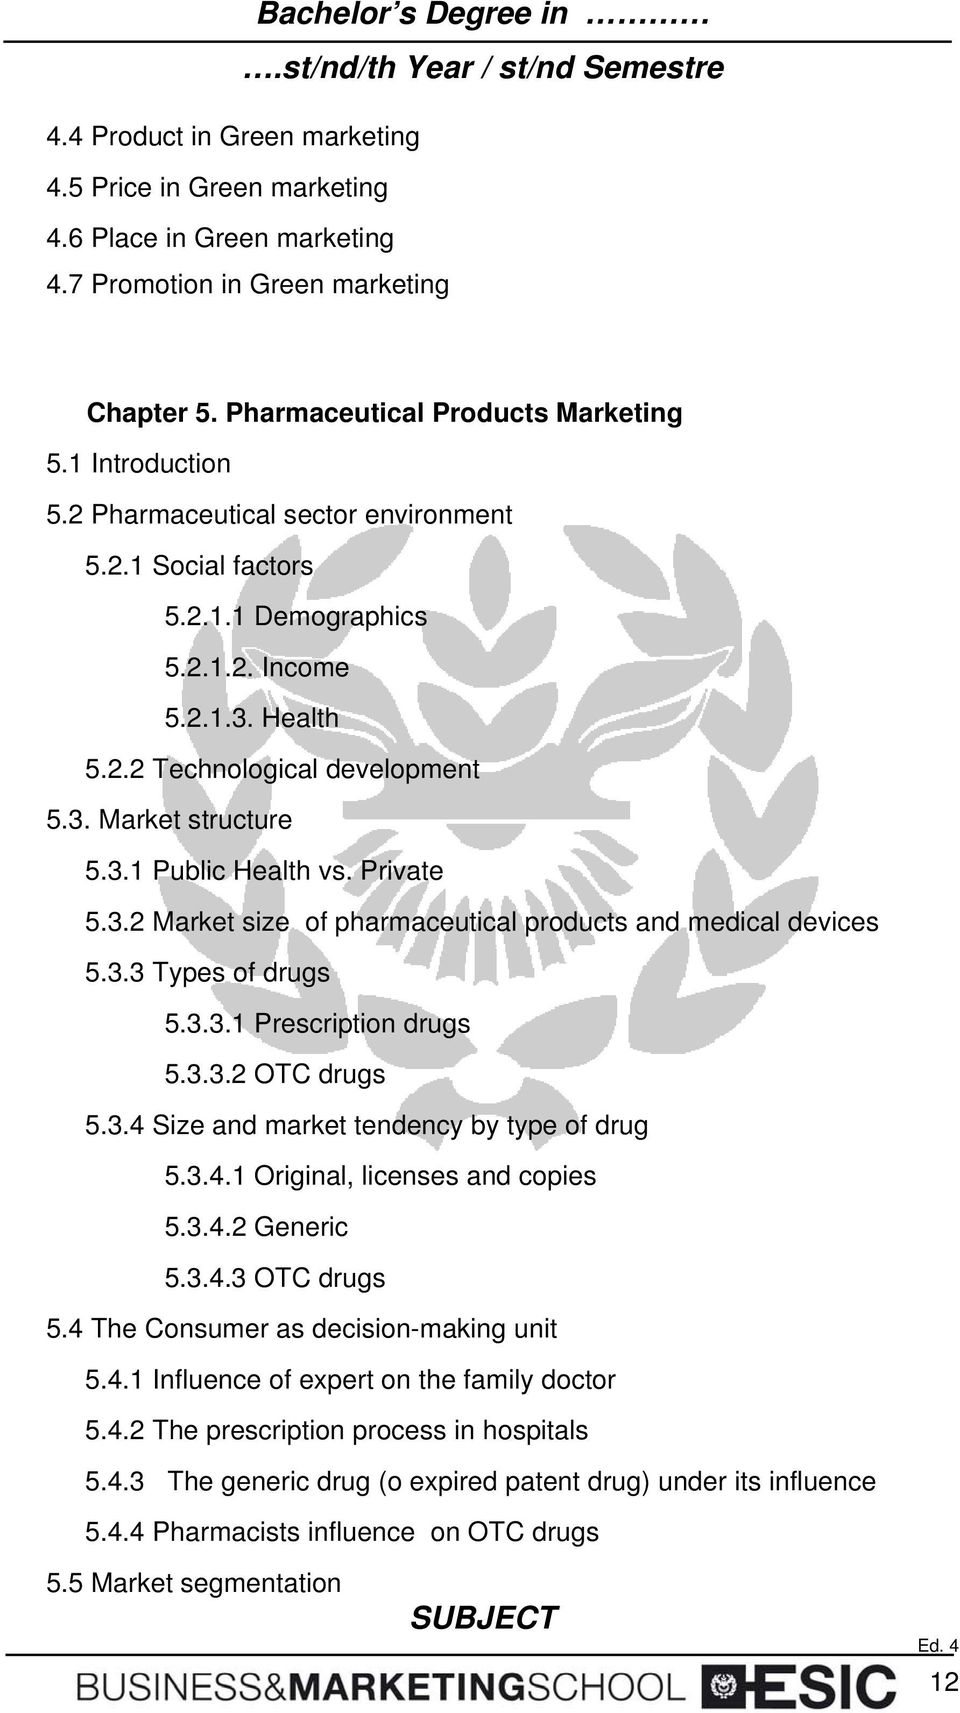 3.3 Types of drugs 5.3.3.1 Prescription drugs 5.3.3.2 OTC drugs 5.3.4 Size and market tendency by type of drug 5.3.4.1 Original, licenses and copies 5.3.4.2 Generic 5.3.4.3 OTC drugs 5.